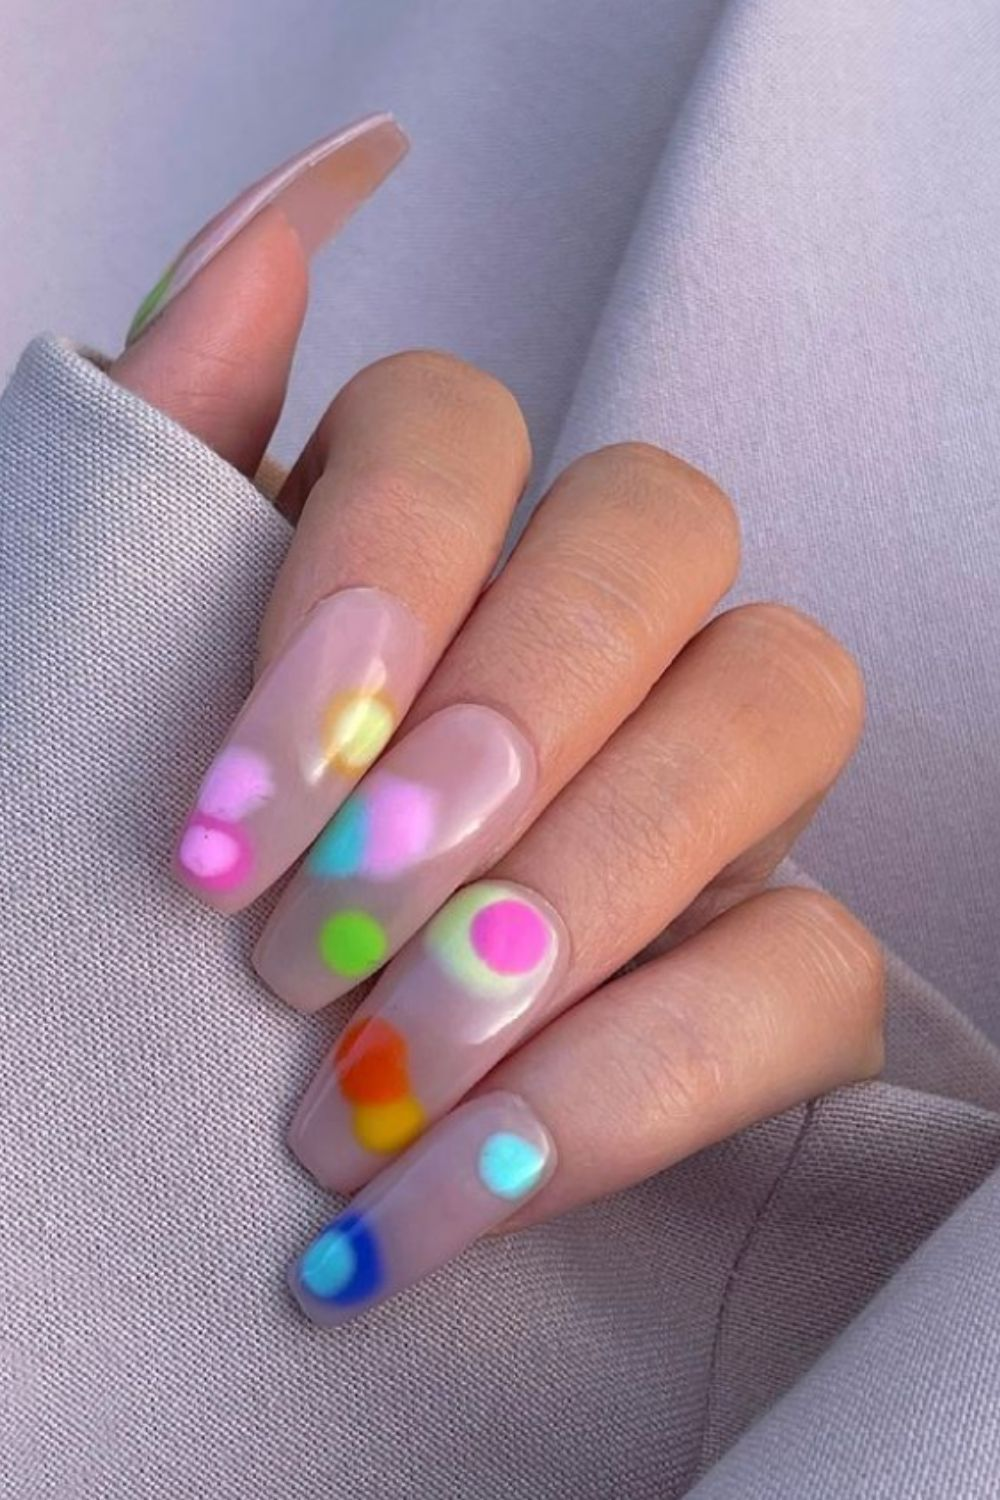 Awesome Summer Coffin Nails You'll Want To Try 2021!